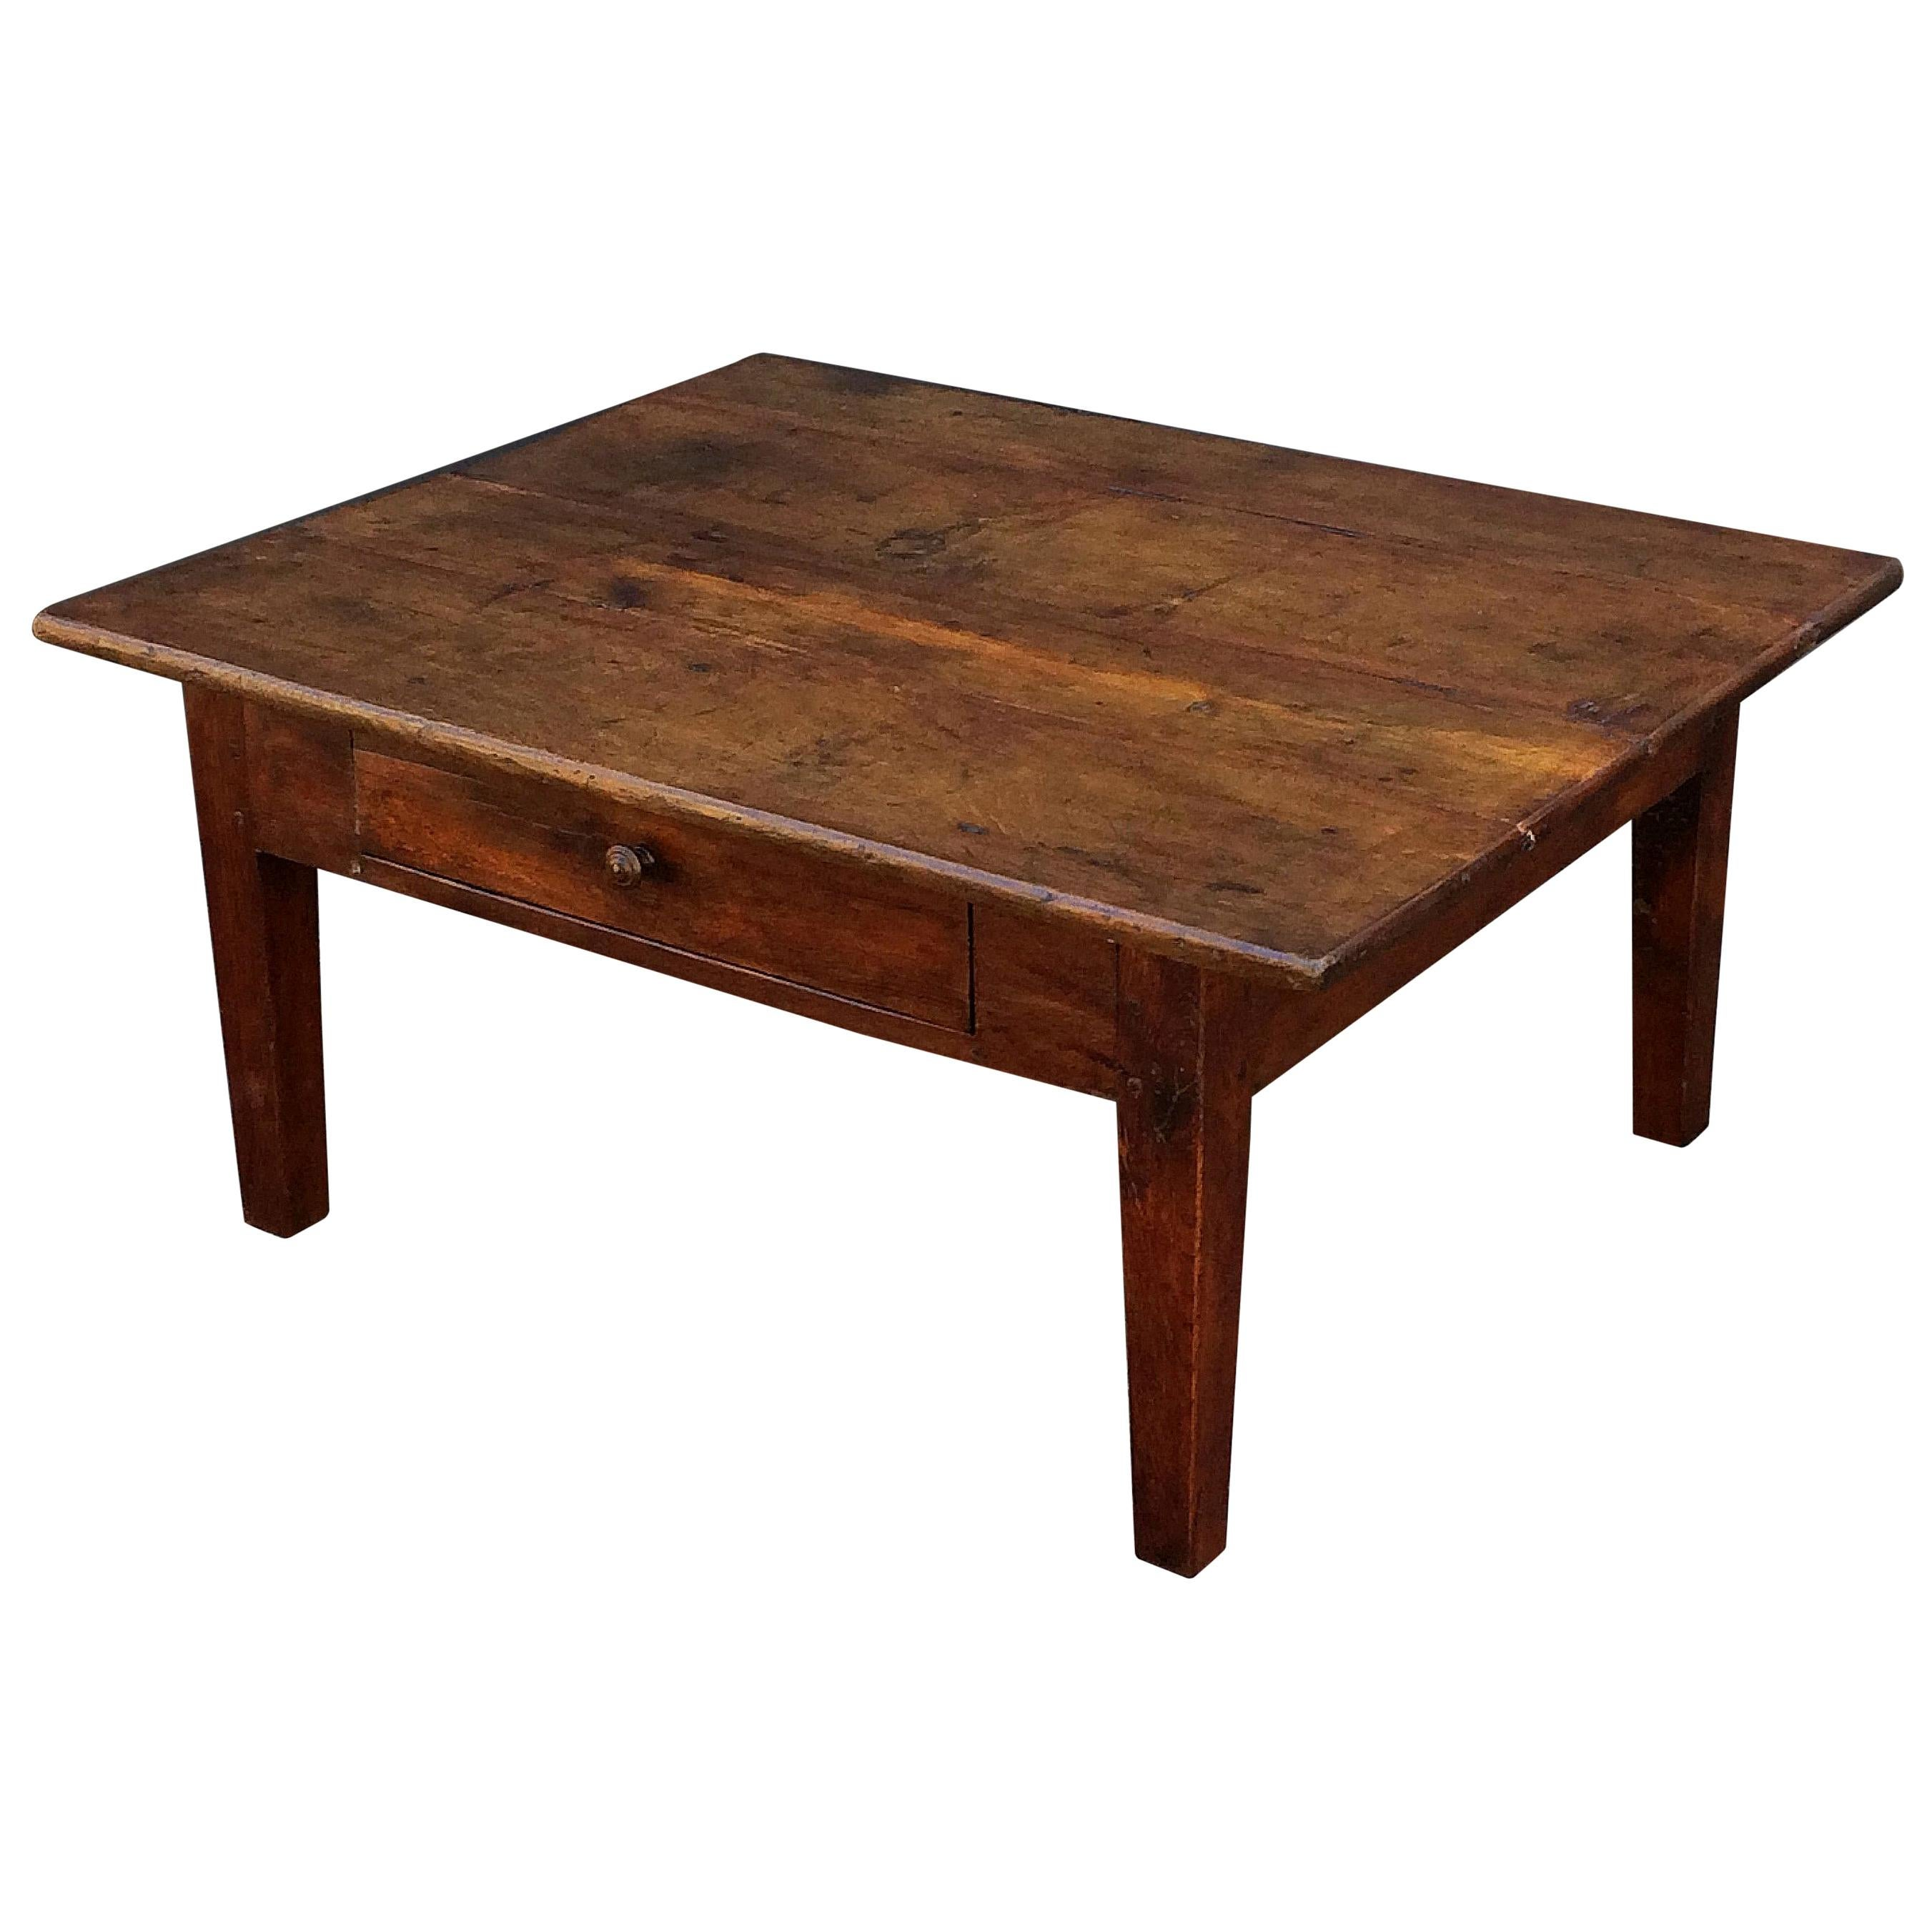 French Rectangular Low Table of Oak